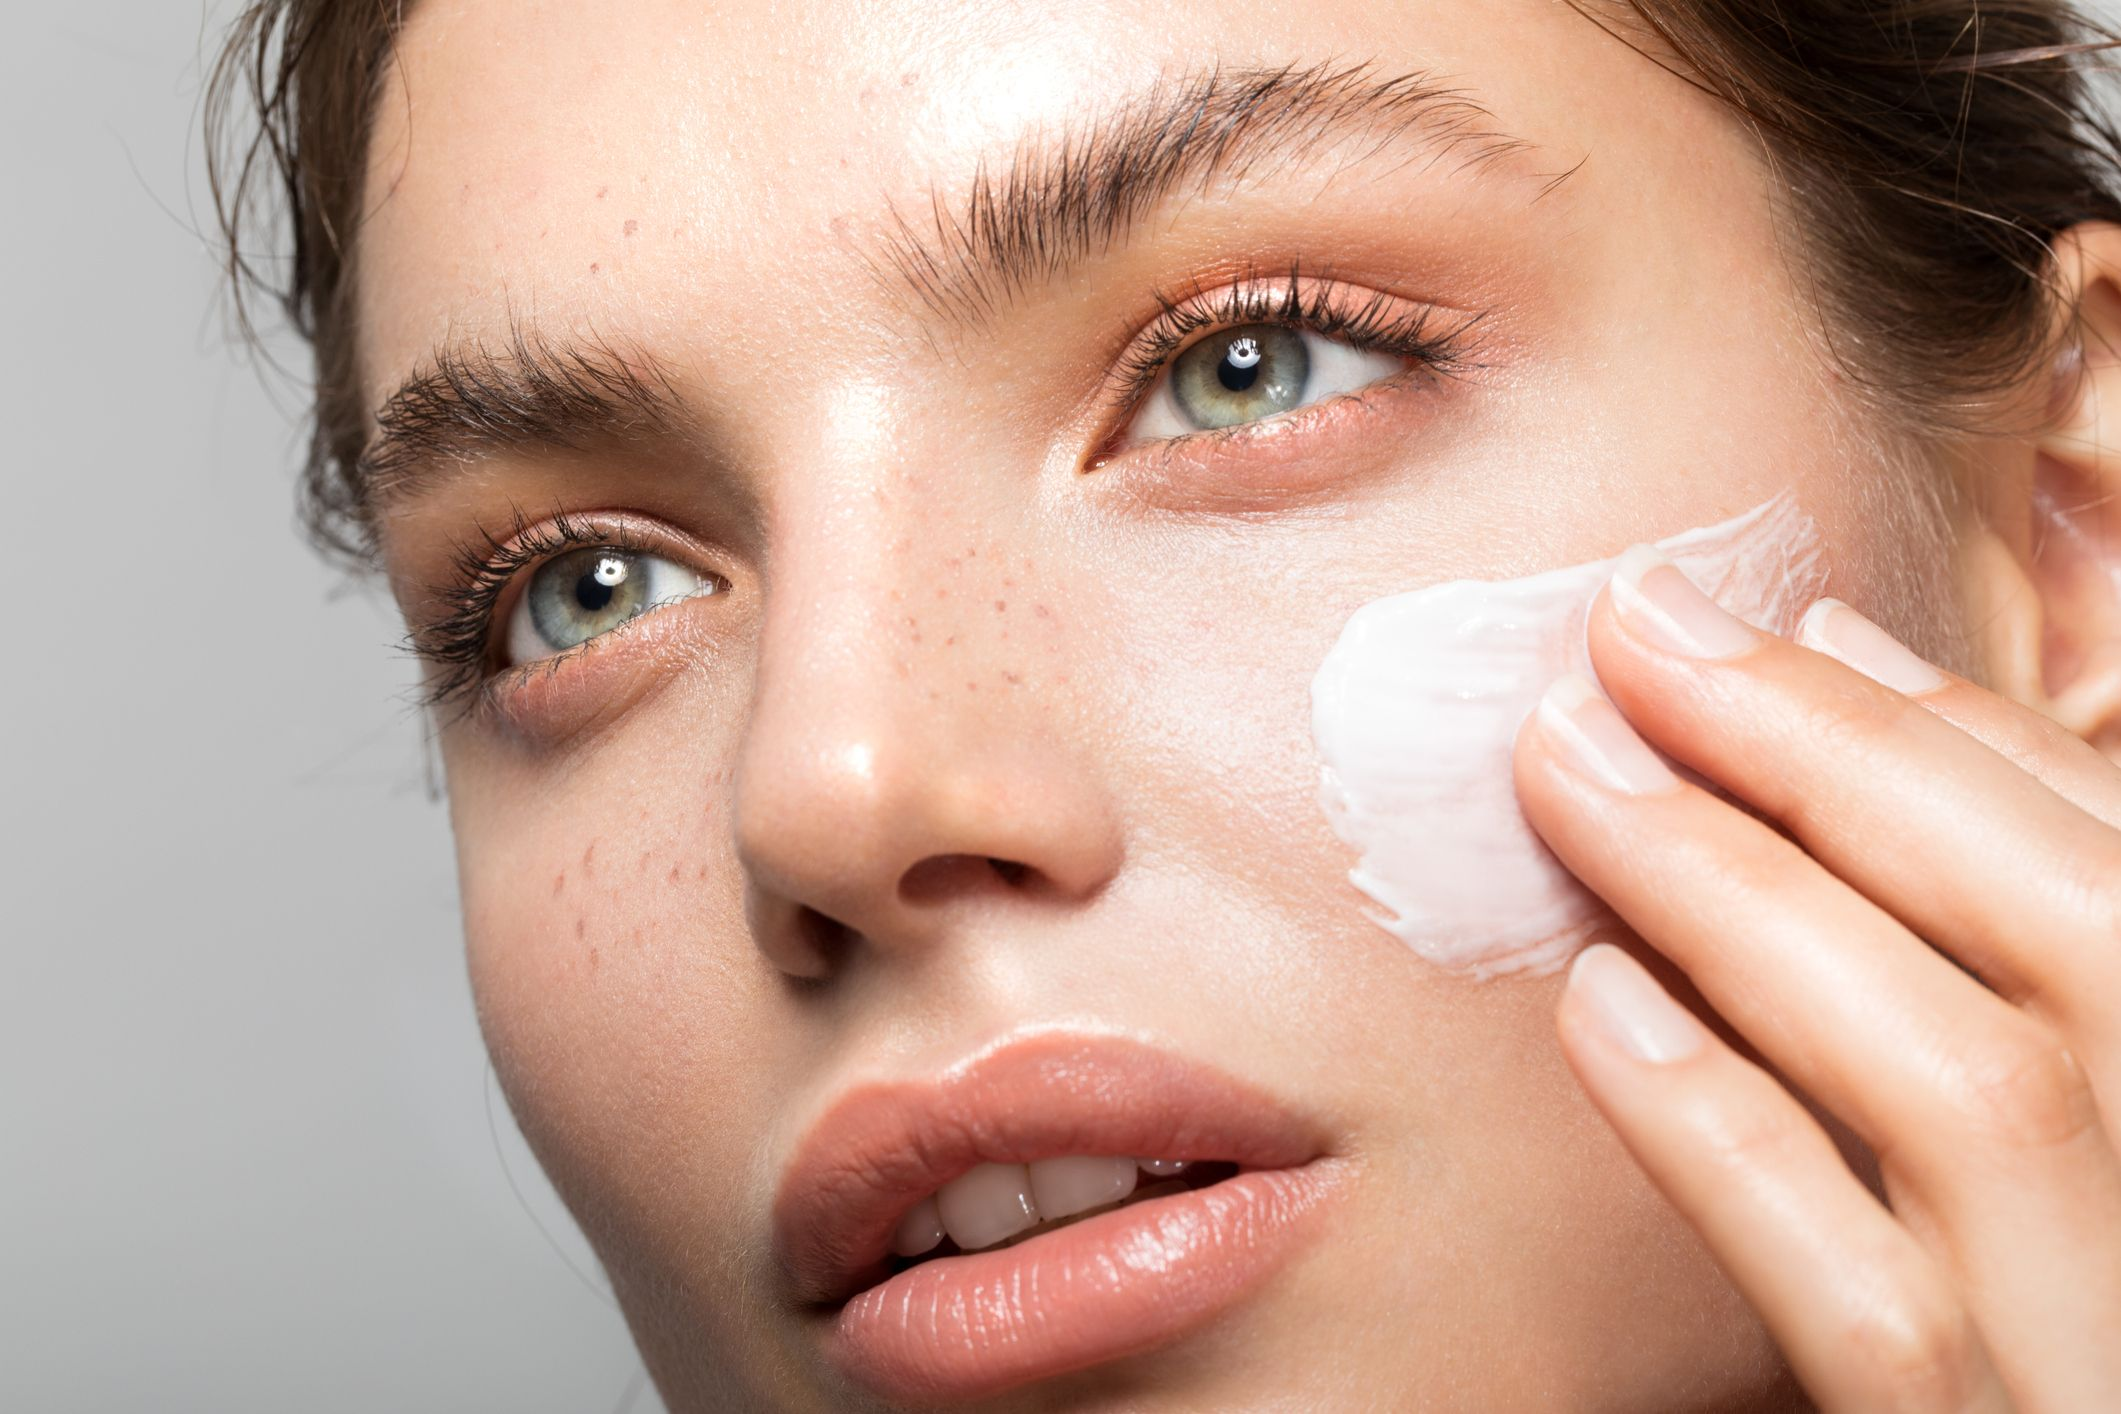 What Retinol Is and Why You Should Use It - How to Use Retinol in Skincare  Routine, Product Benefits